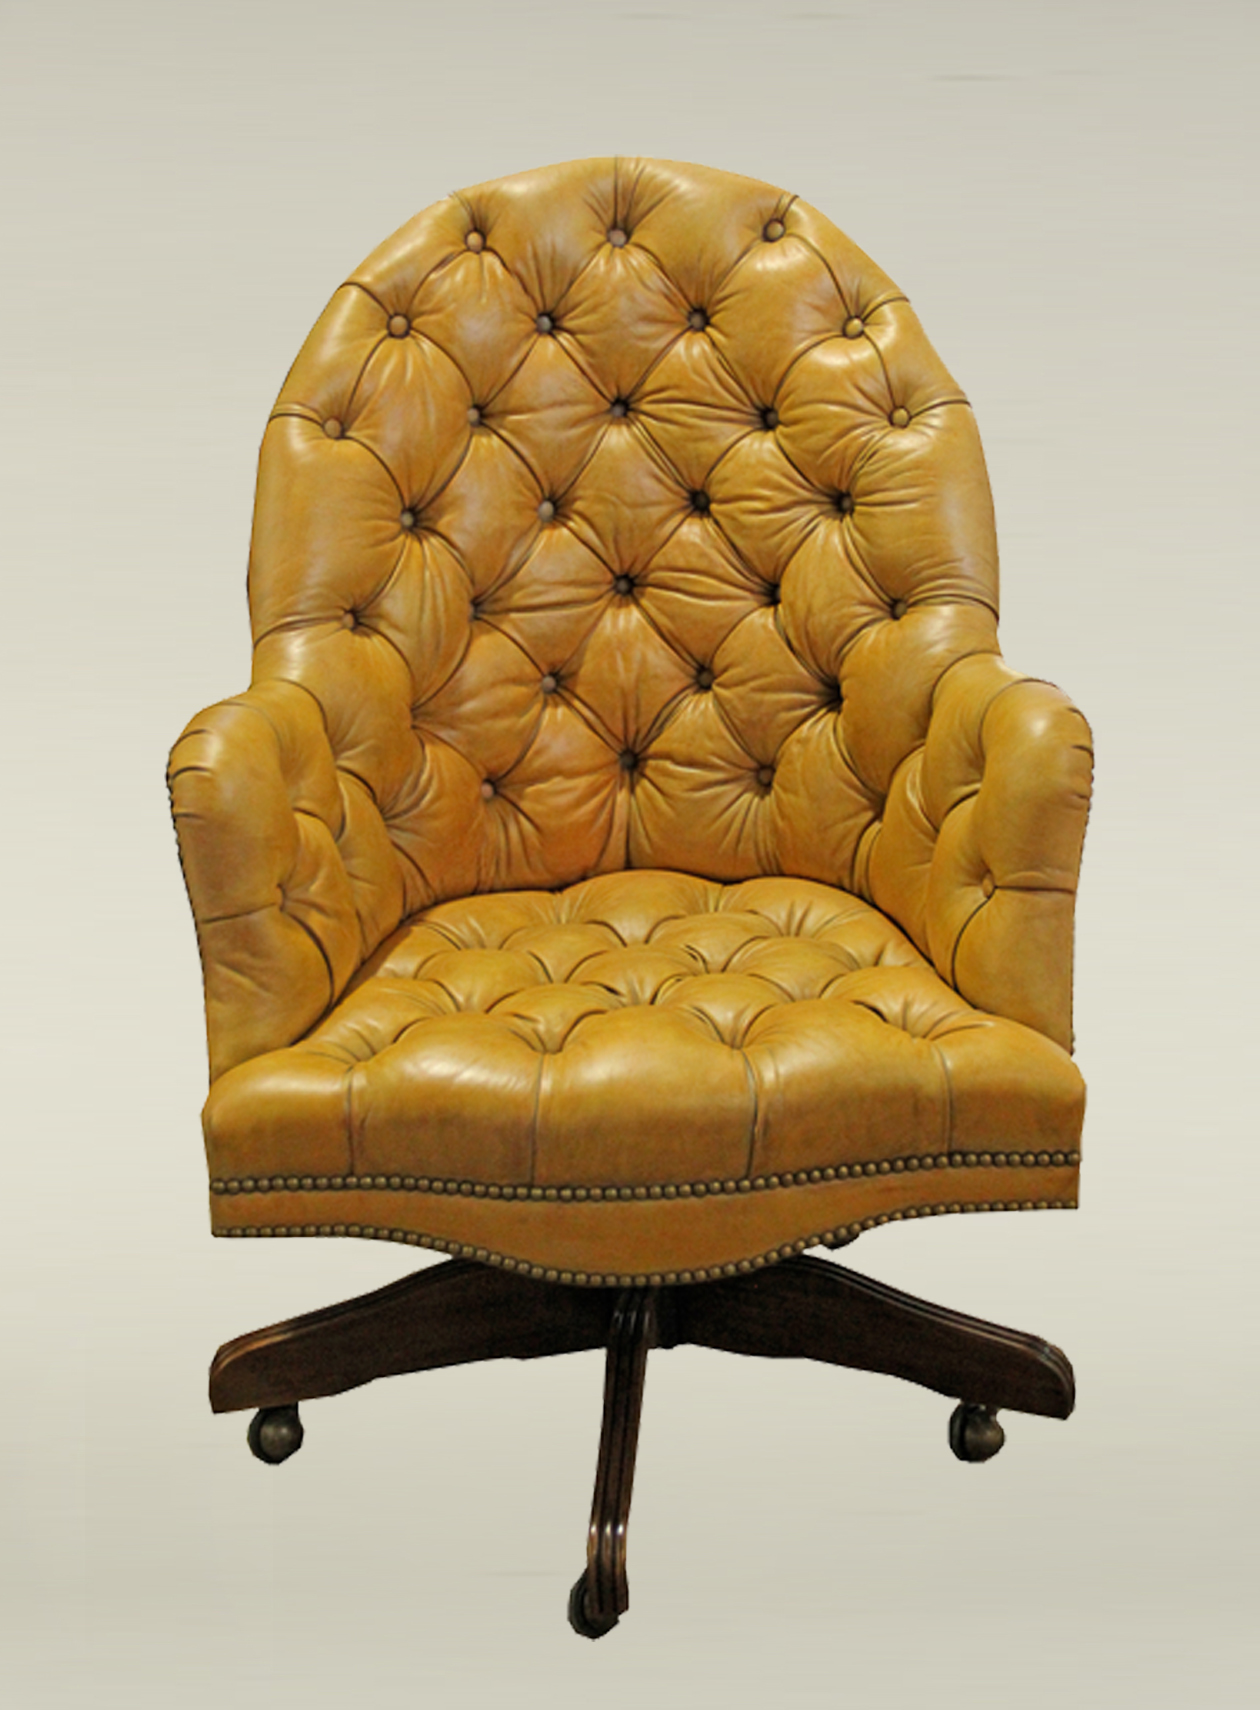 Parma Tufted Desk Chair No. 3504